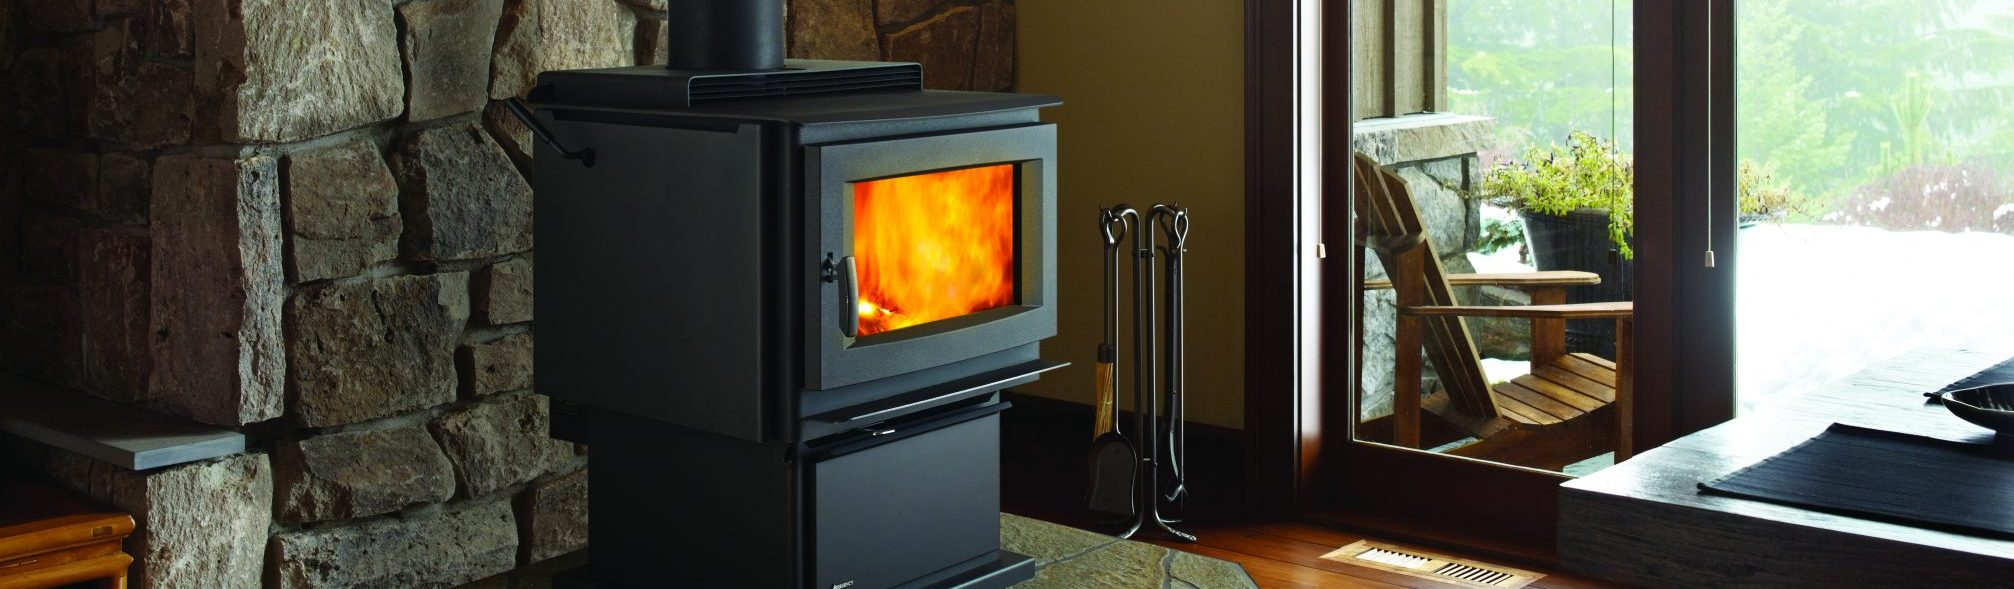 wood stove in livingroom